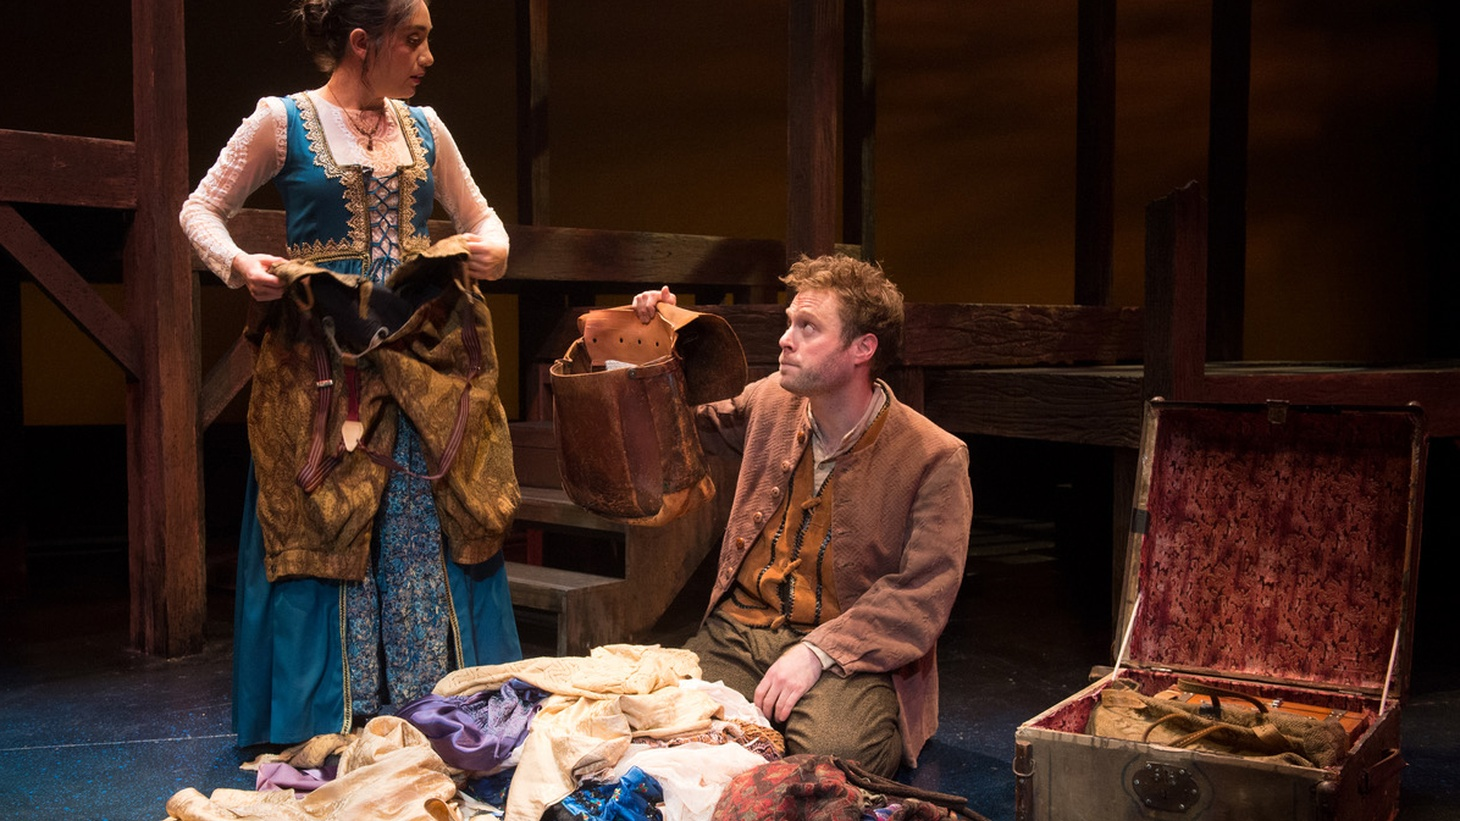 """What if """"The Merchant of Venice"""" were told from Shylock's daughter's perspective? That's the conceit behind Sarah Mantell's play """"Everything that never happened""""."""